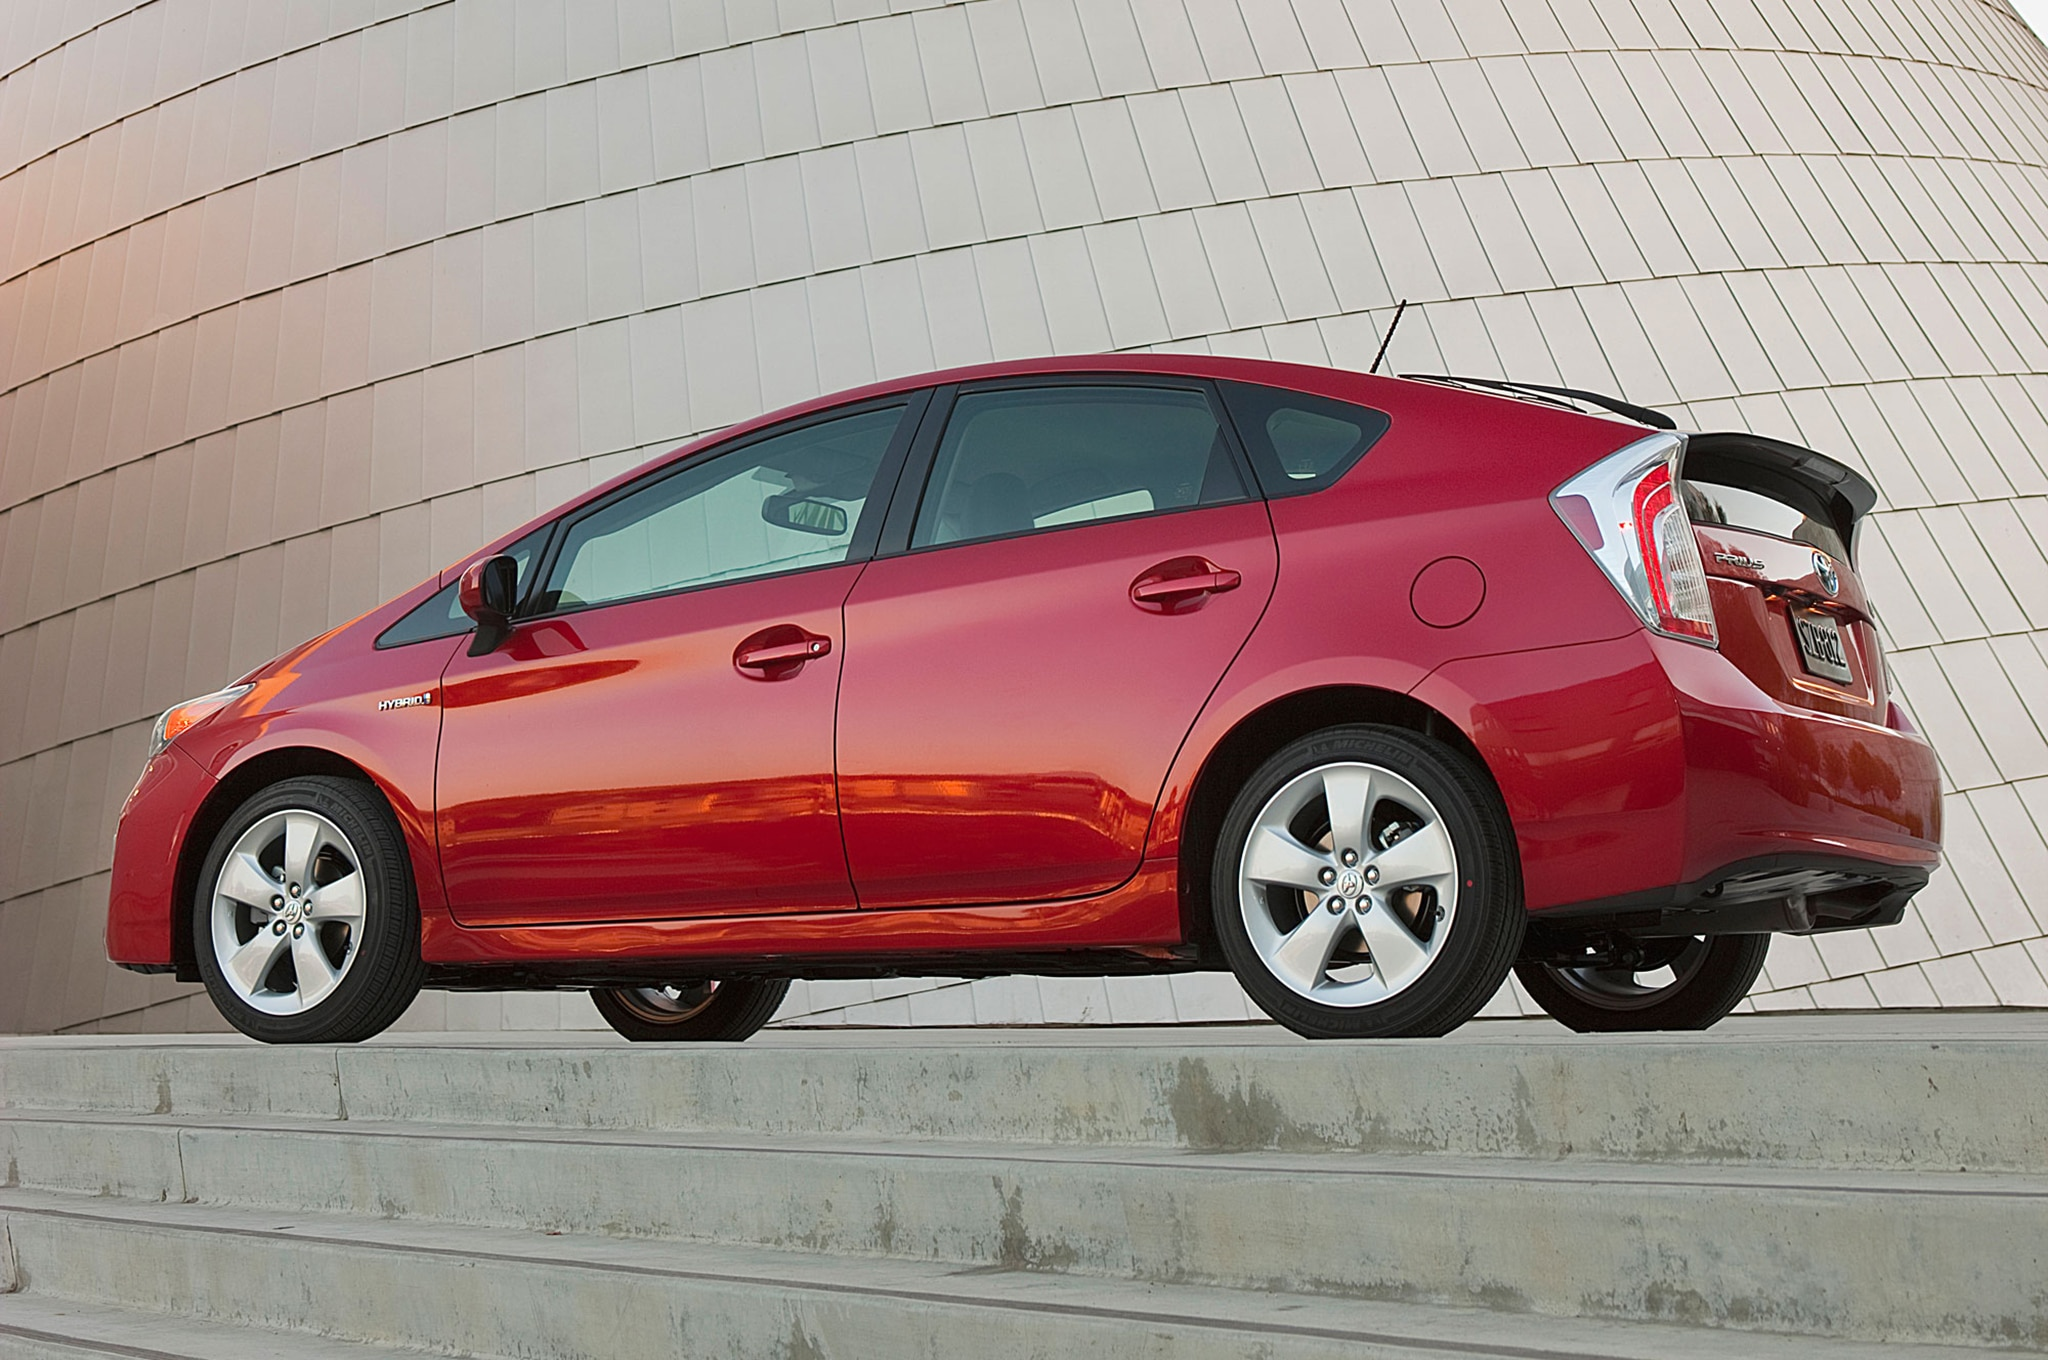 2014 Toyota Prius Three Quarters Side View 0011